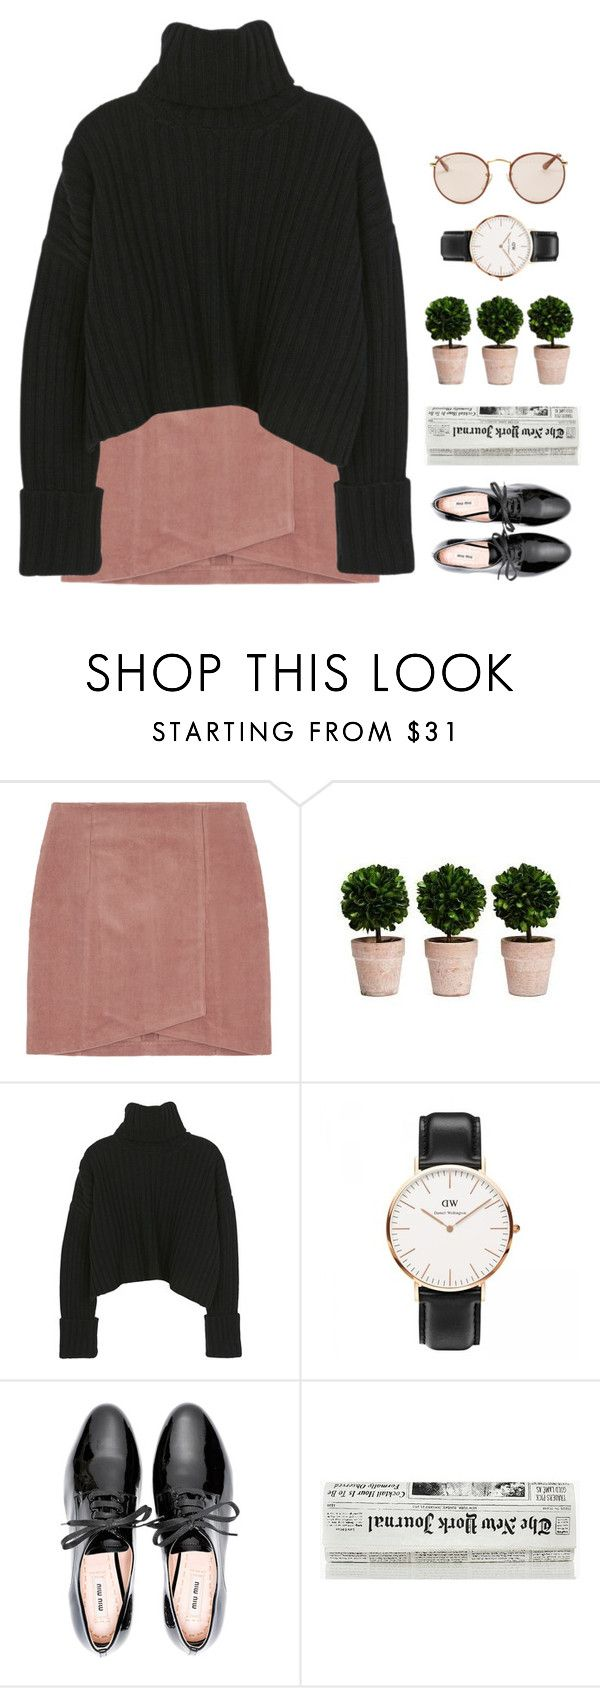 """""""// dw . 1 //"""" by theonlynewgirl ❤ liked on Polyvore featuring Miu Miu, Ray-Ban and danielwellington"""